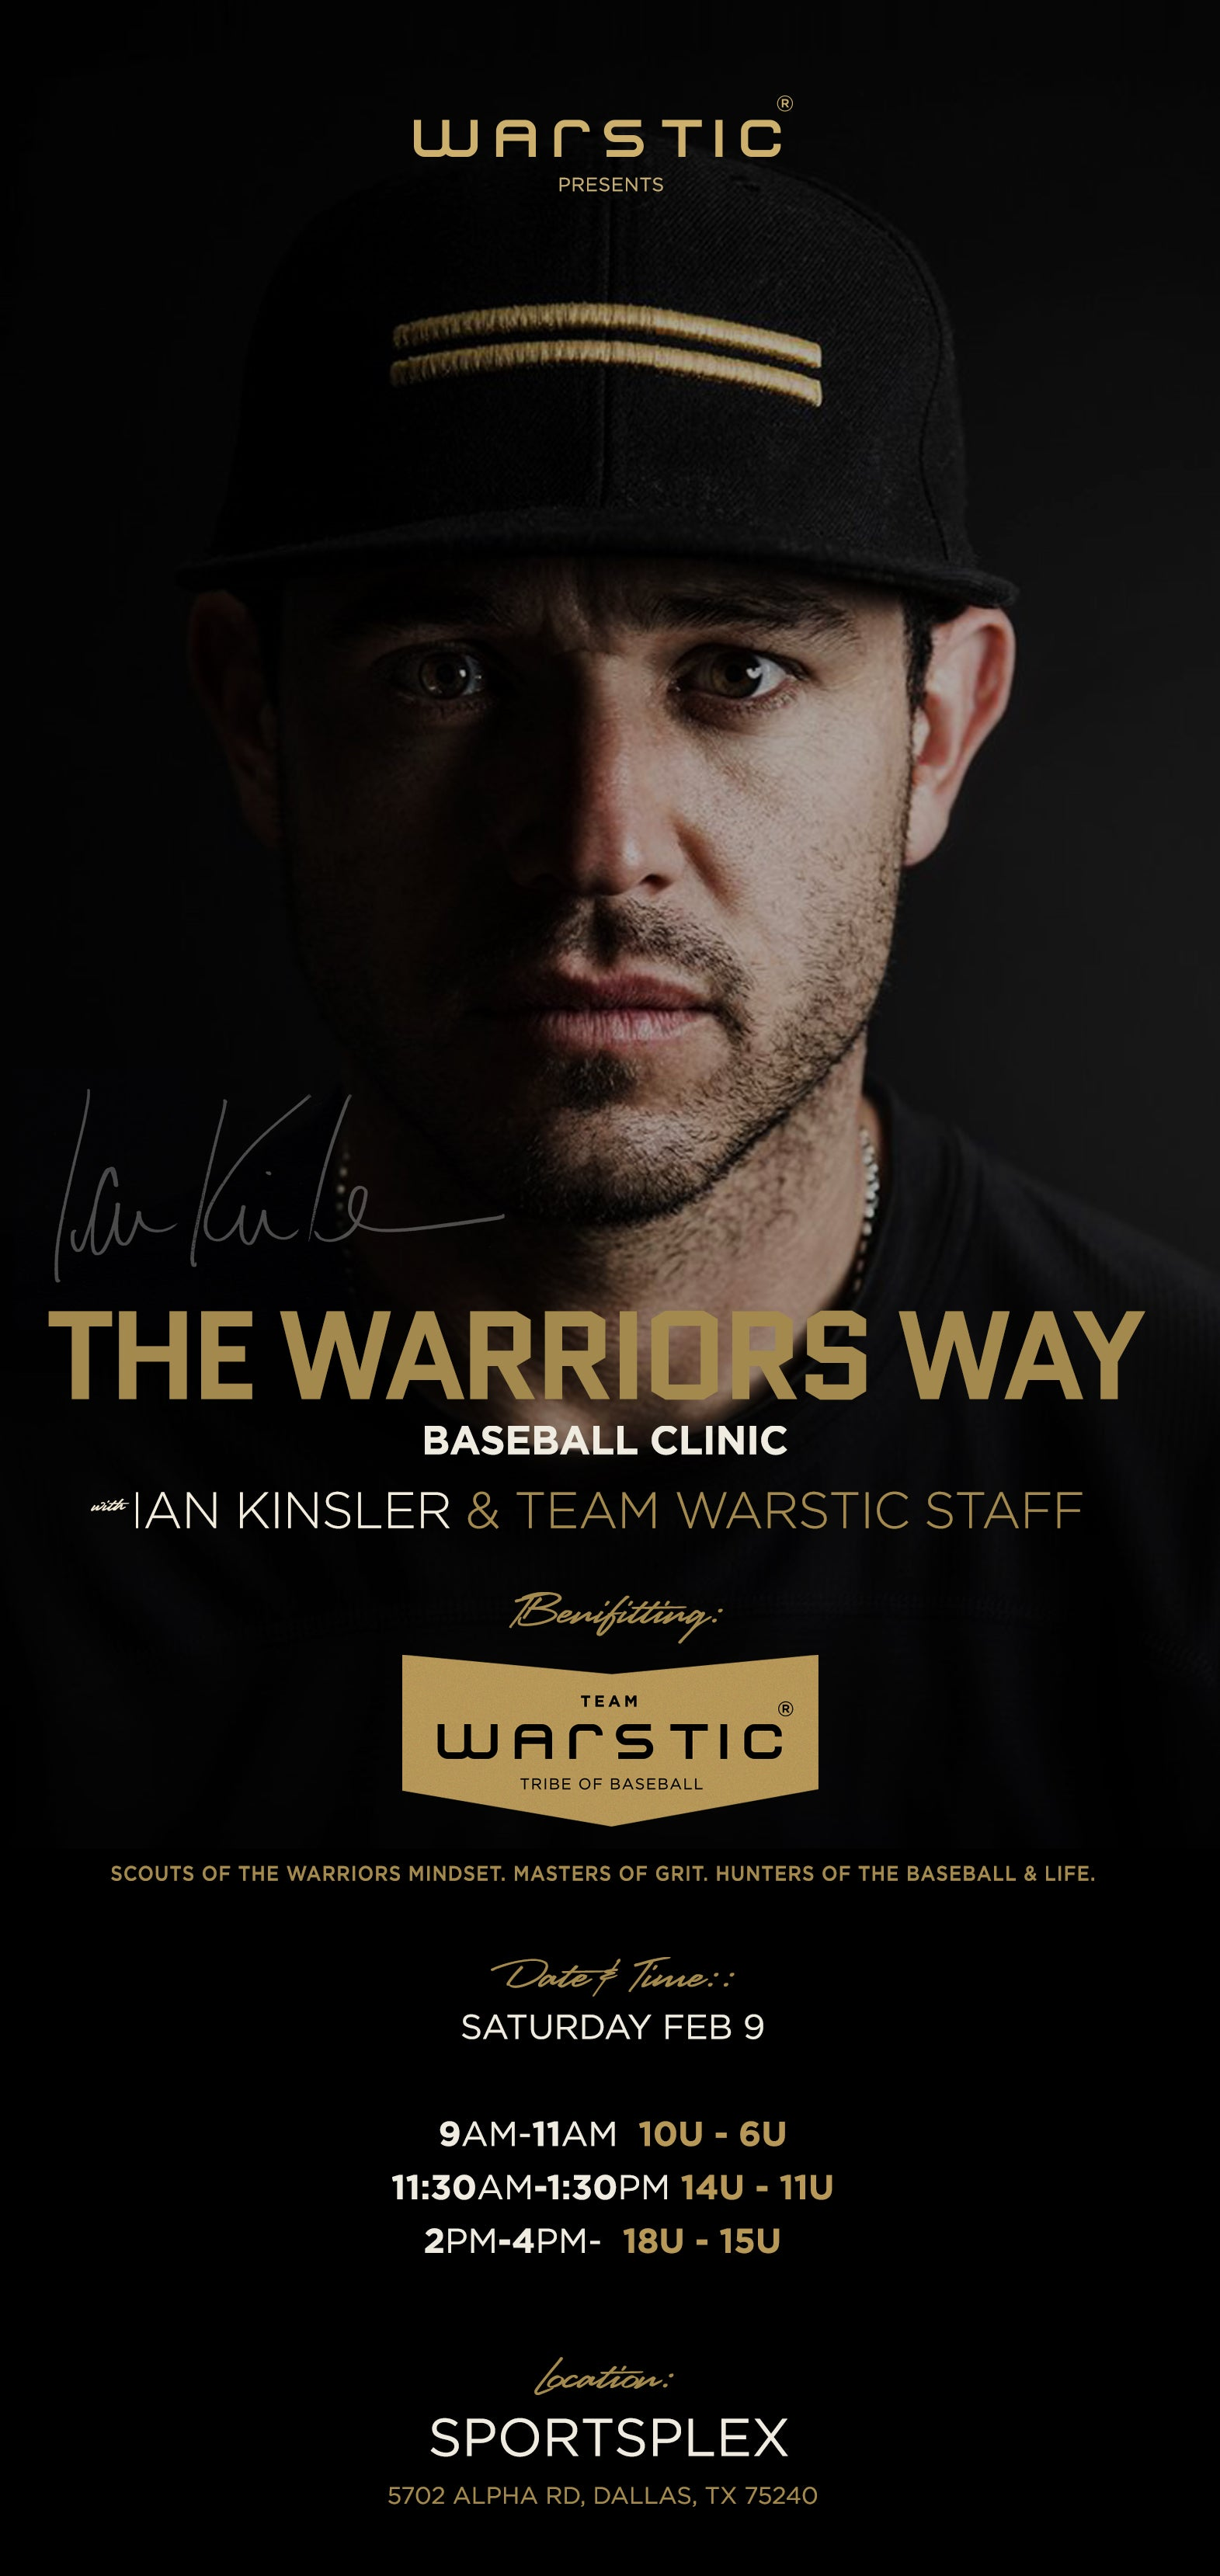 The Warrior's Way Baseball Clinic  - Saturday February 9, 2019